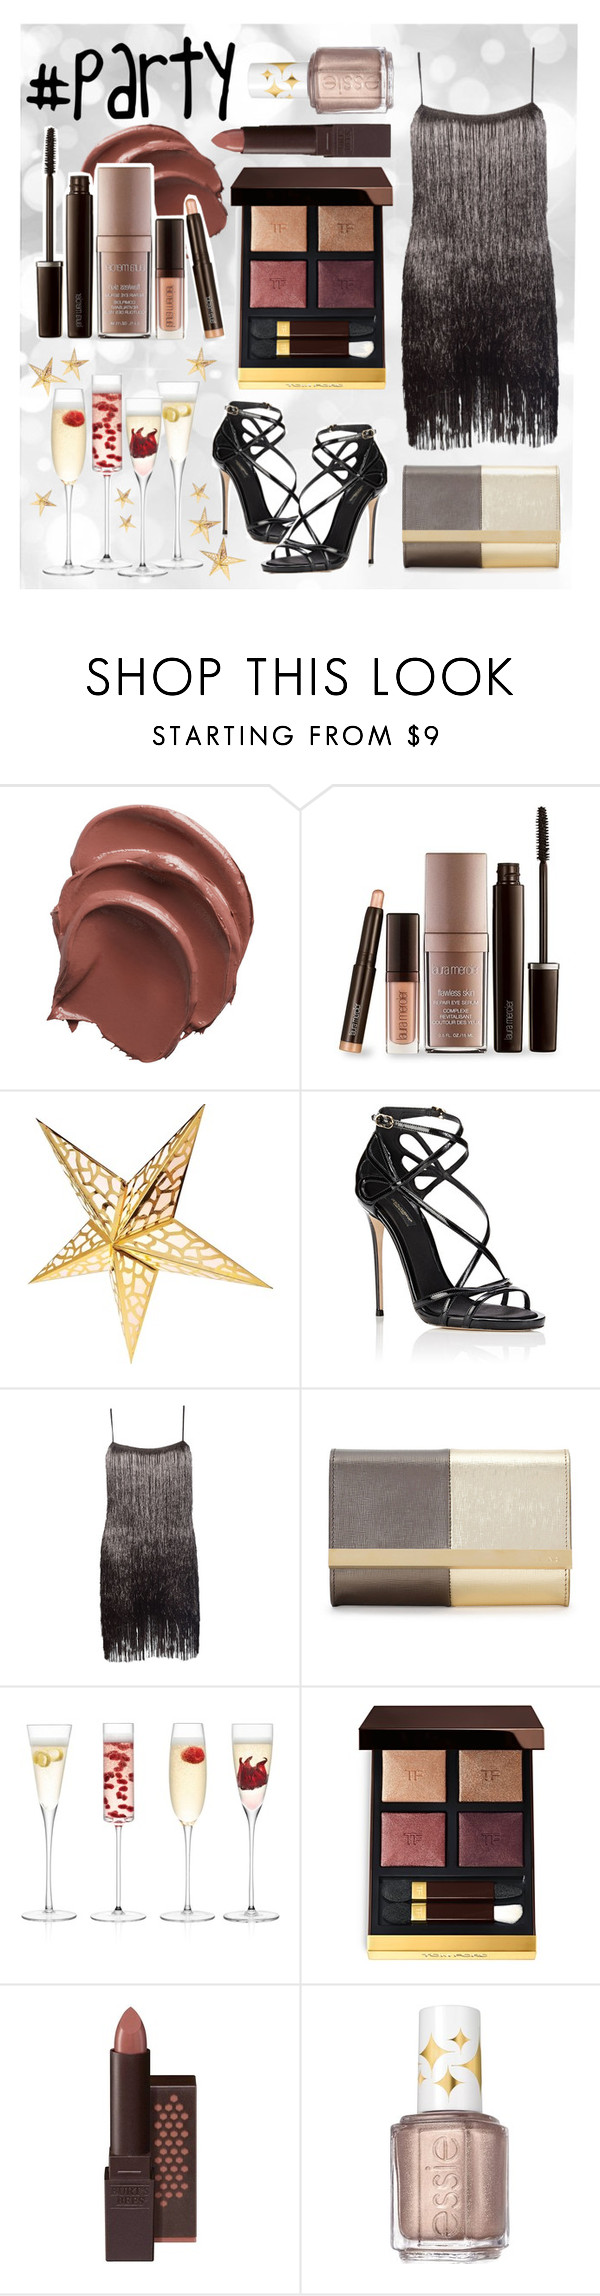 """Friday night party 🎉"" by laura-jayne-crook ❤ liked on Polyvore featuring Laura Mercier, Dolce&Gabbana, Rachel Zoe, Fendi, LSA International, Tom Ford, Burt's Bees and Essie"